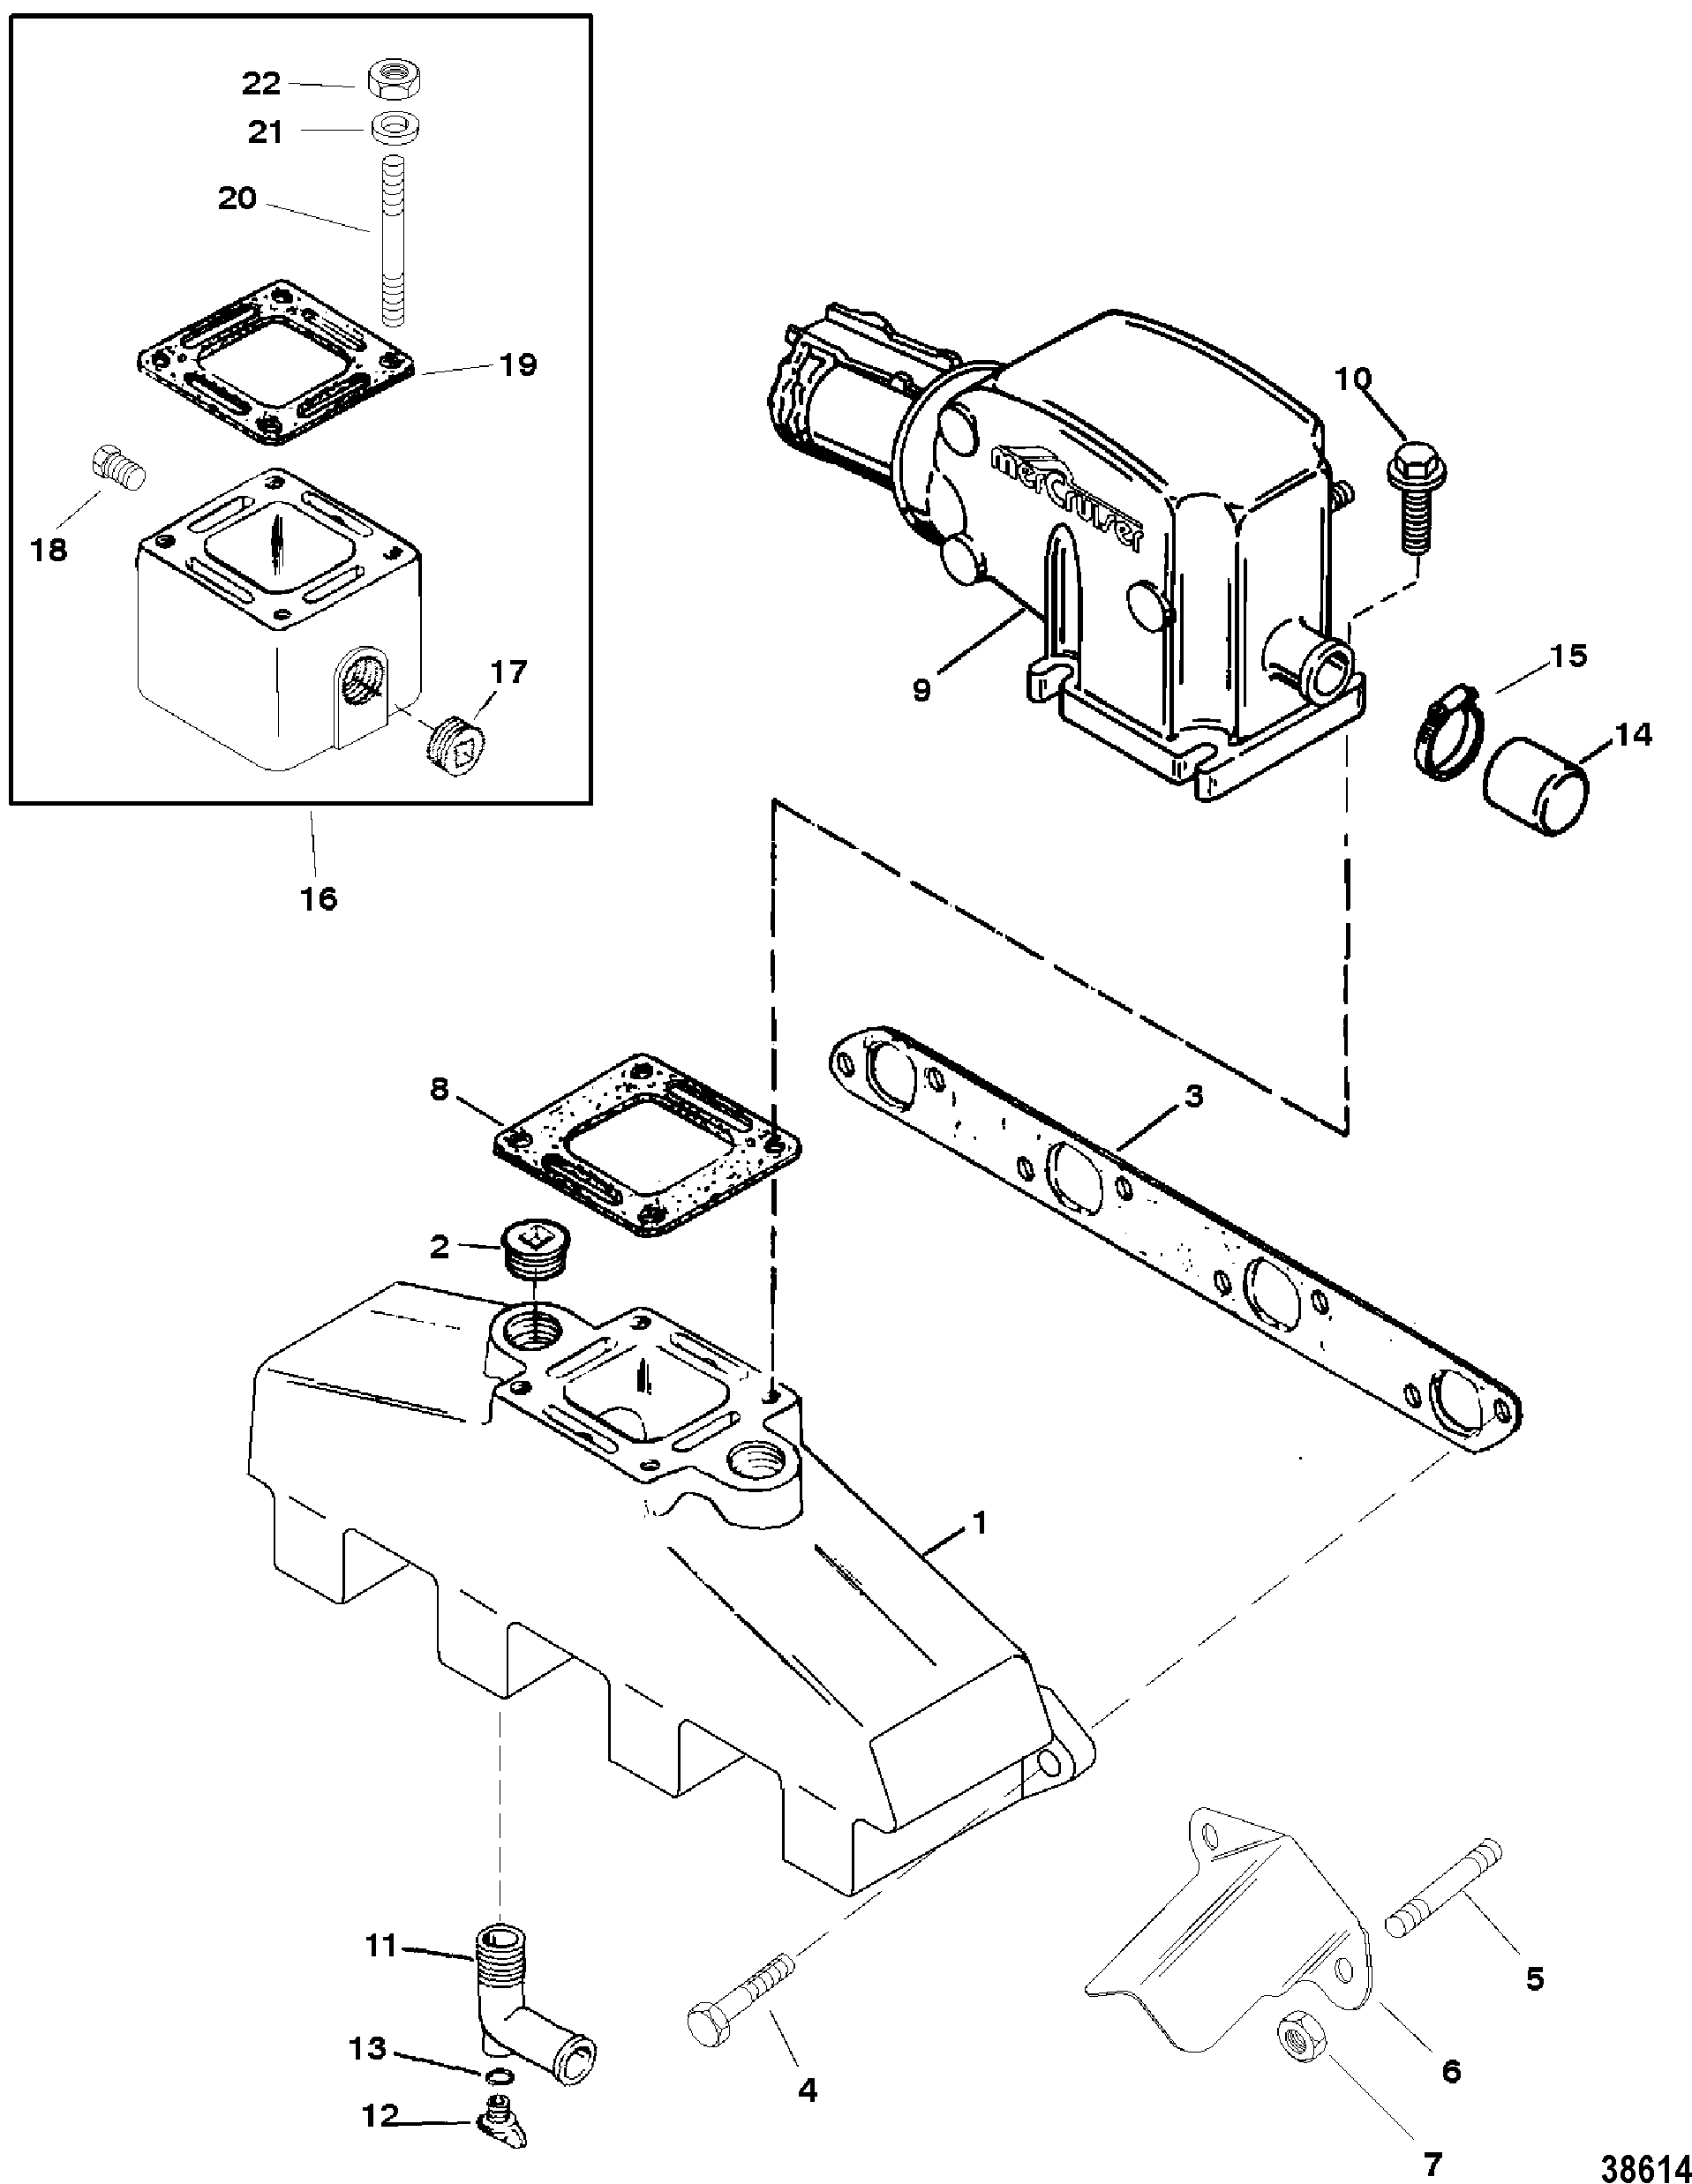 Exhaust manifold and exhaust elbow